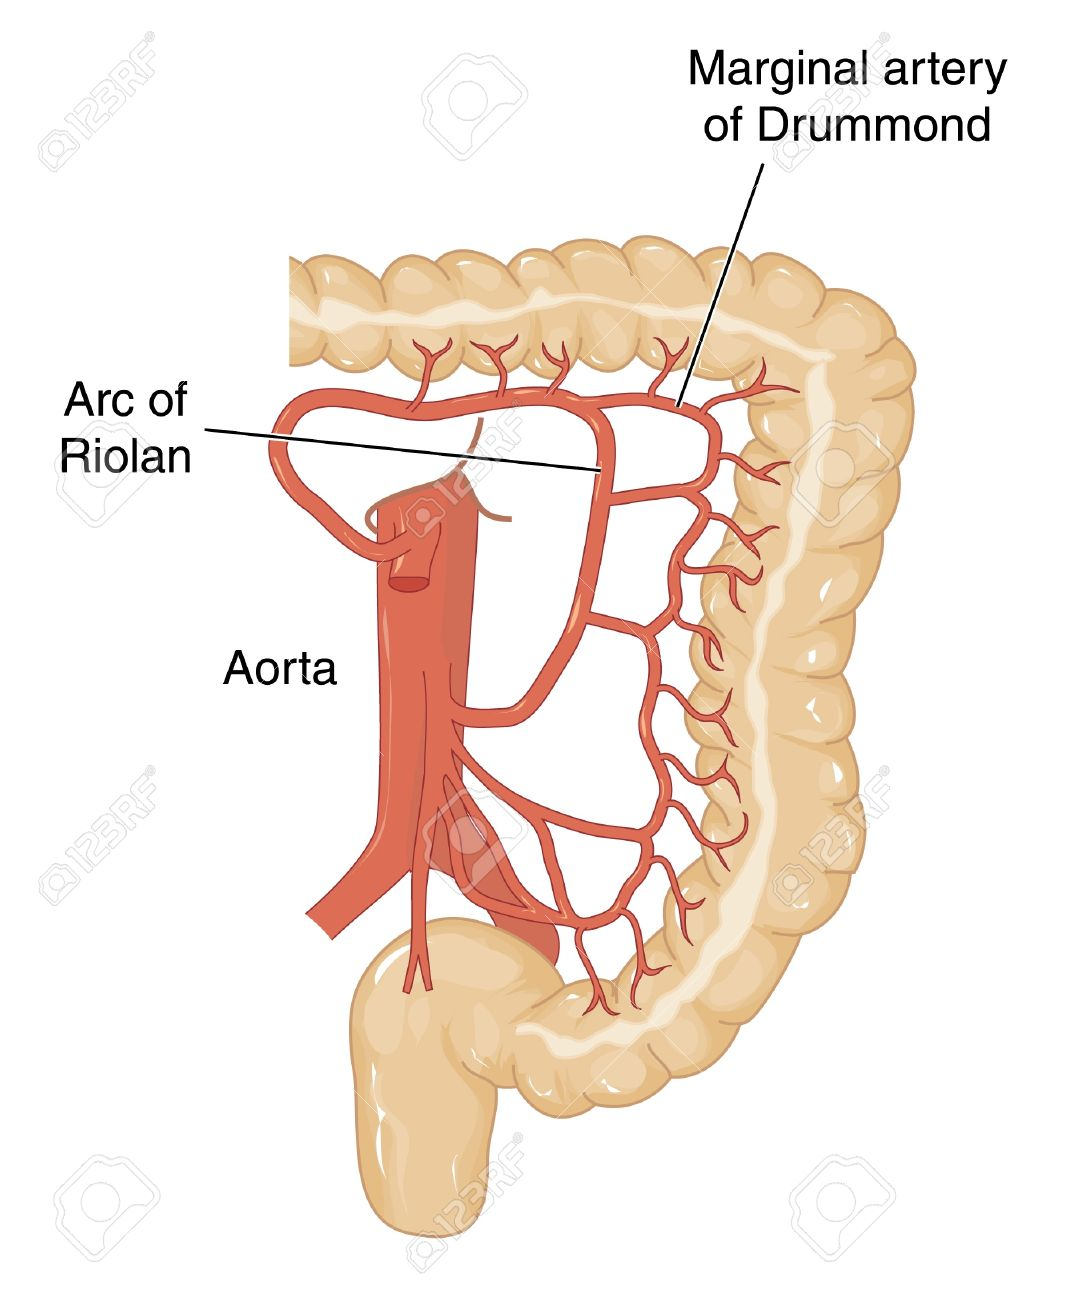 Blood Vessels From The Abdominal Aorta That Supply Blood To The